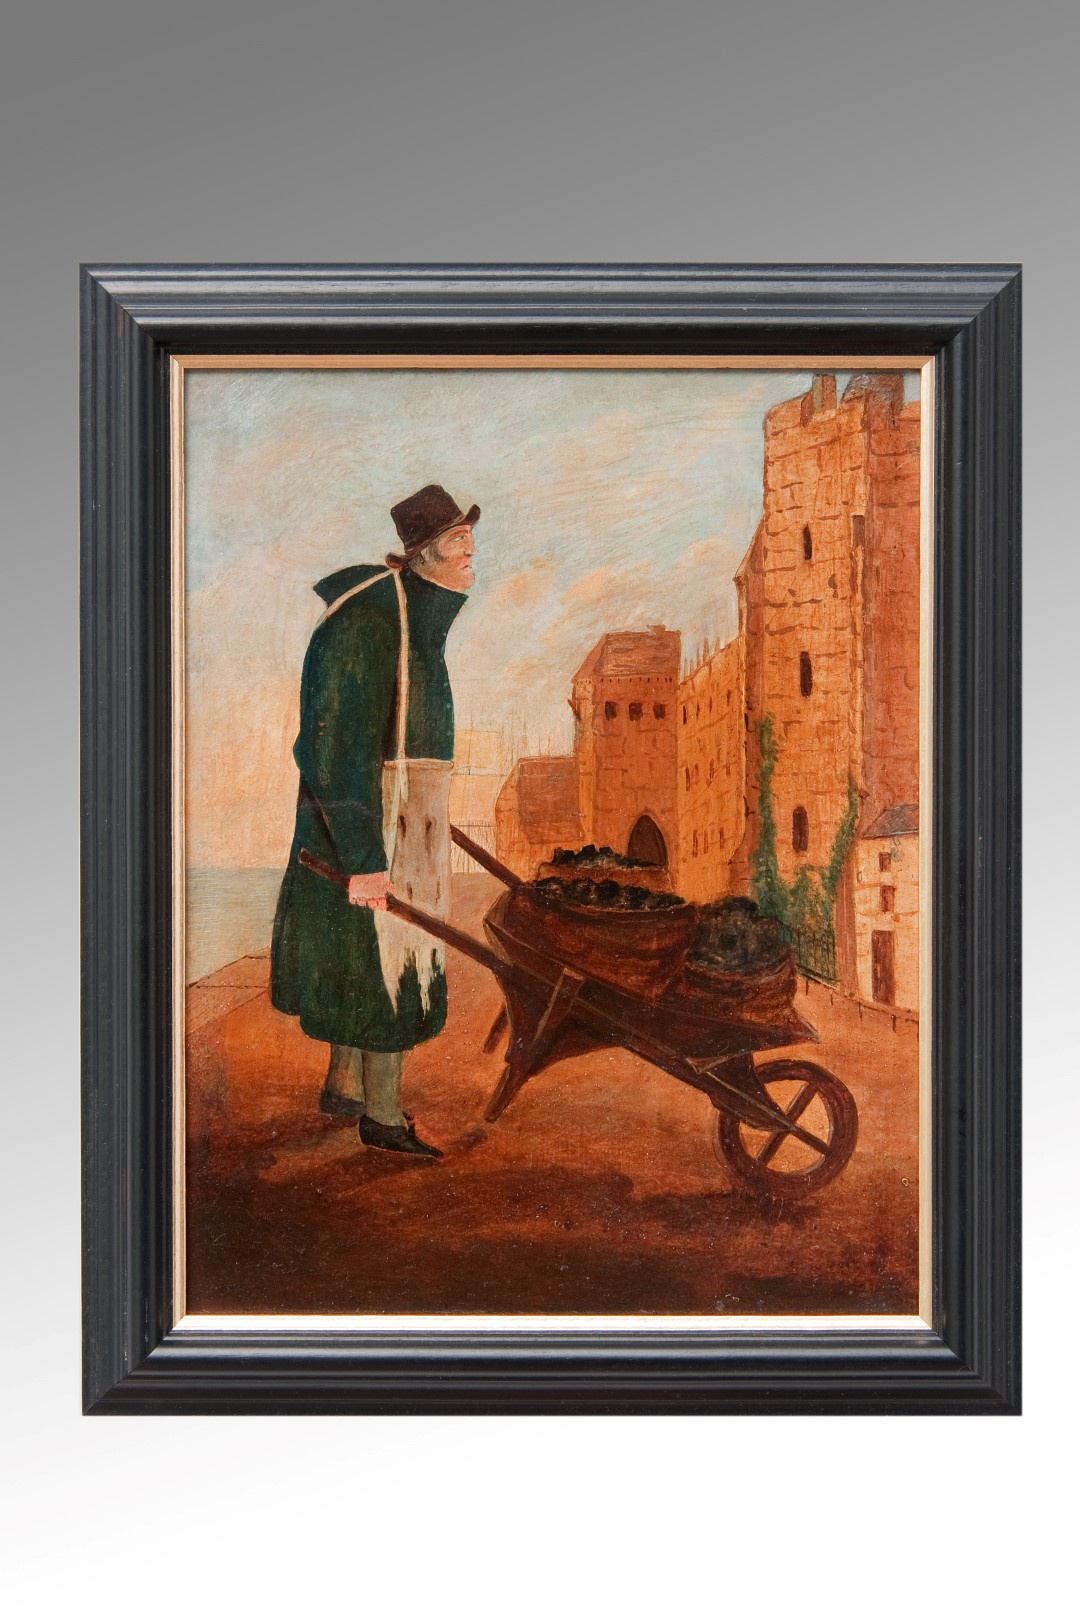 Image of A Coal Delivery by Wheelbarrow a 19th Century Oil on Board